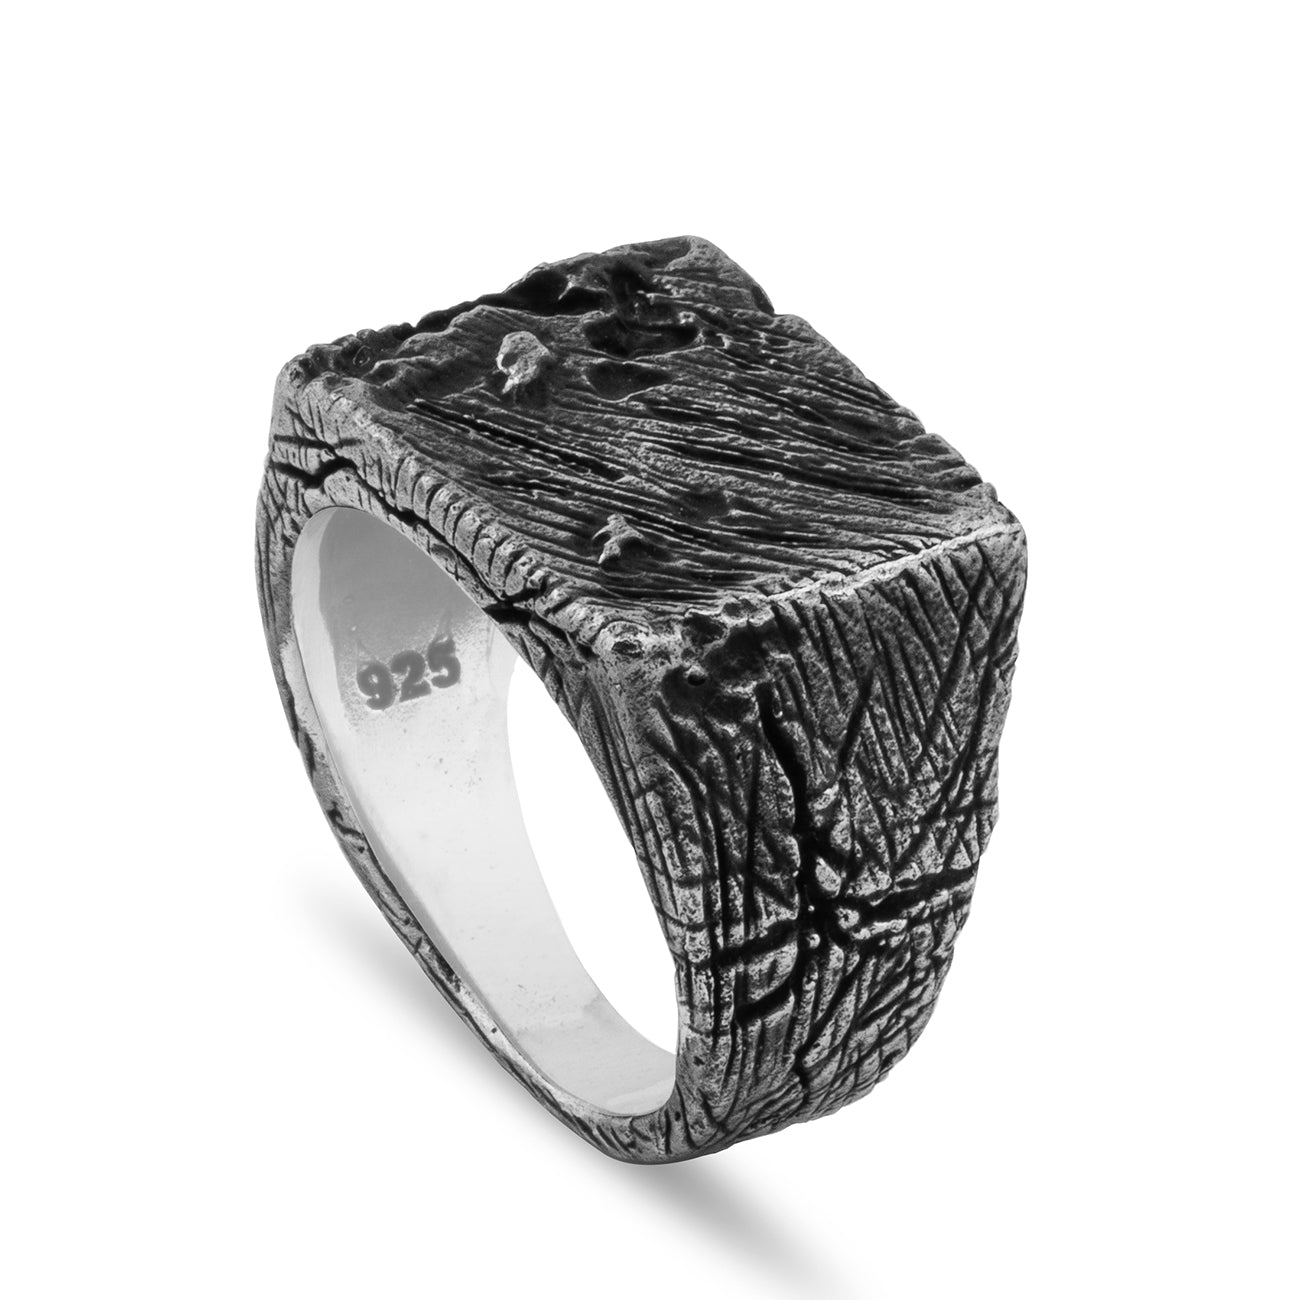 silver square ring sterling silver ring carved unique mens ring simple ring unique ring stamped ring vintage ring rectangle ring